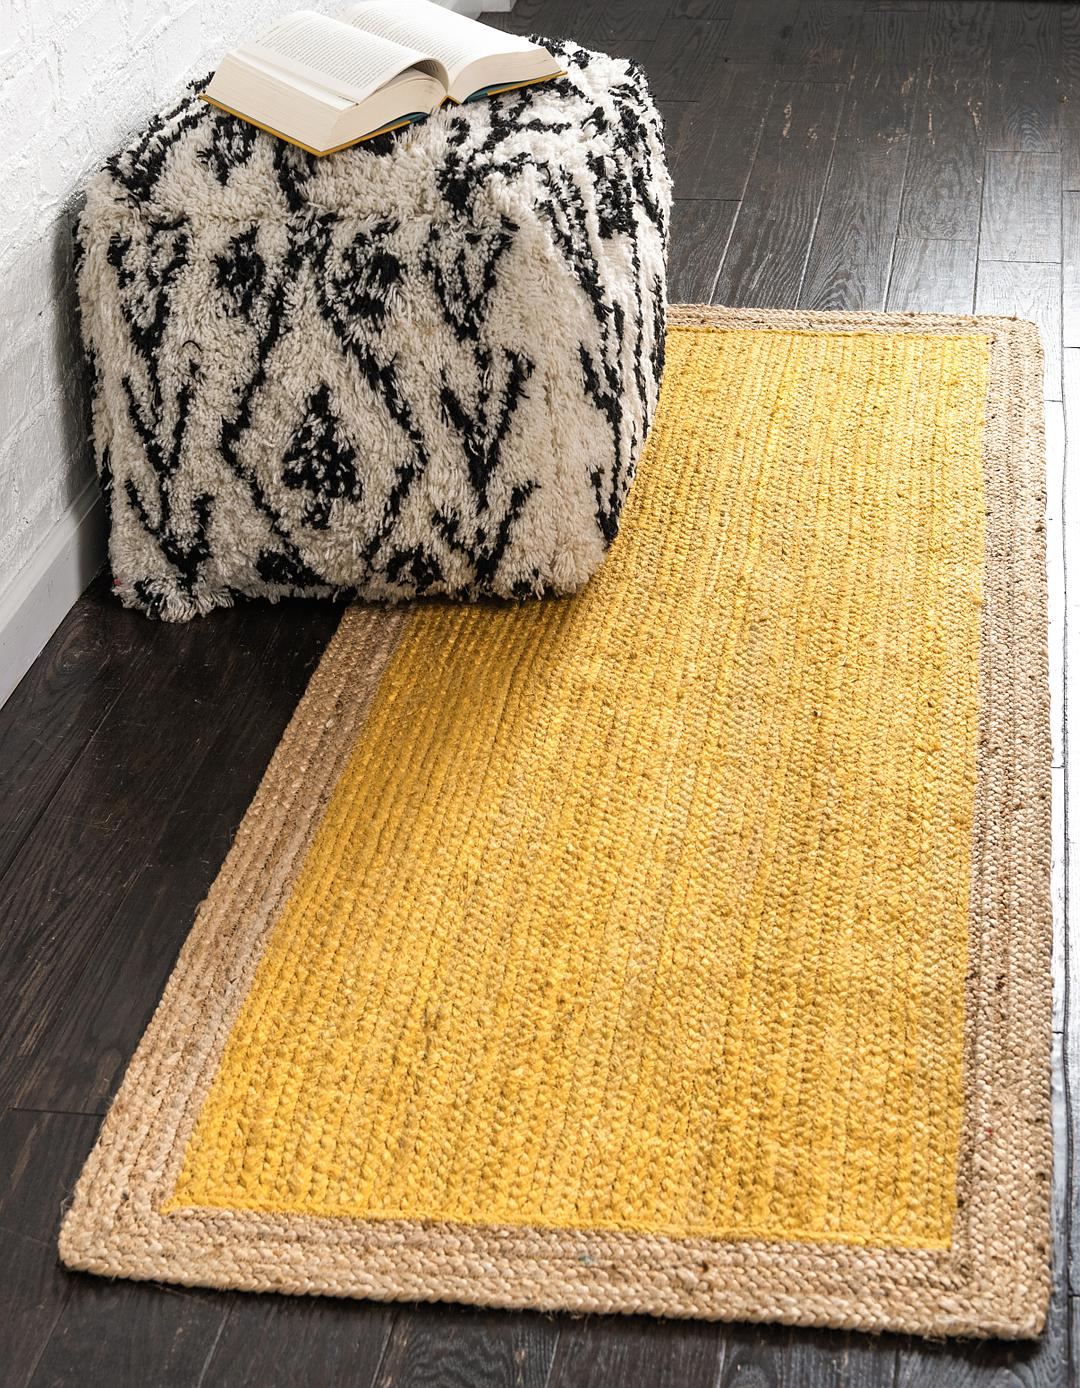 Yellow 2 6 X 6 Braided Jute Runner Rug Area Rugs Handknottedcom